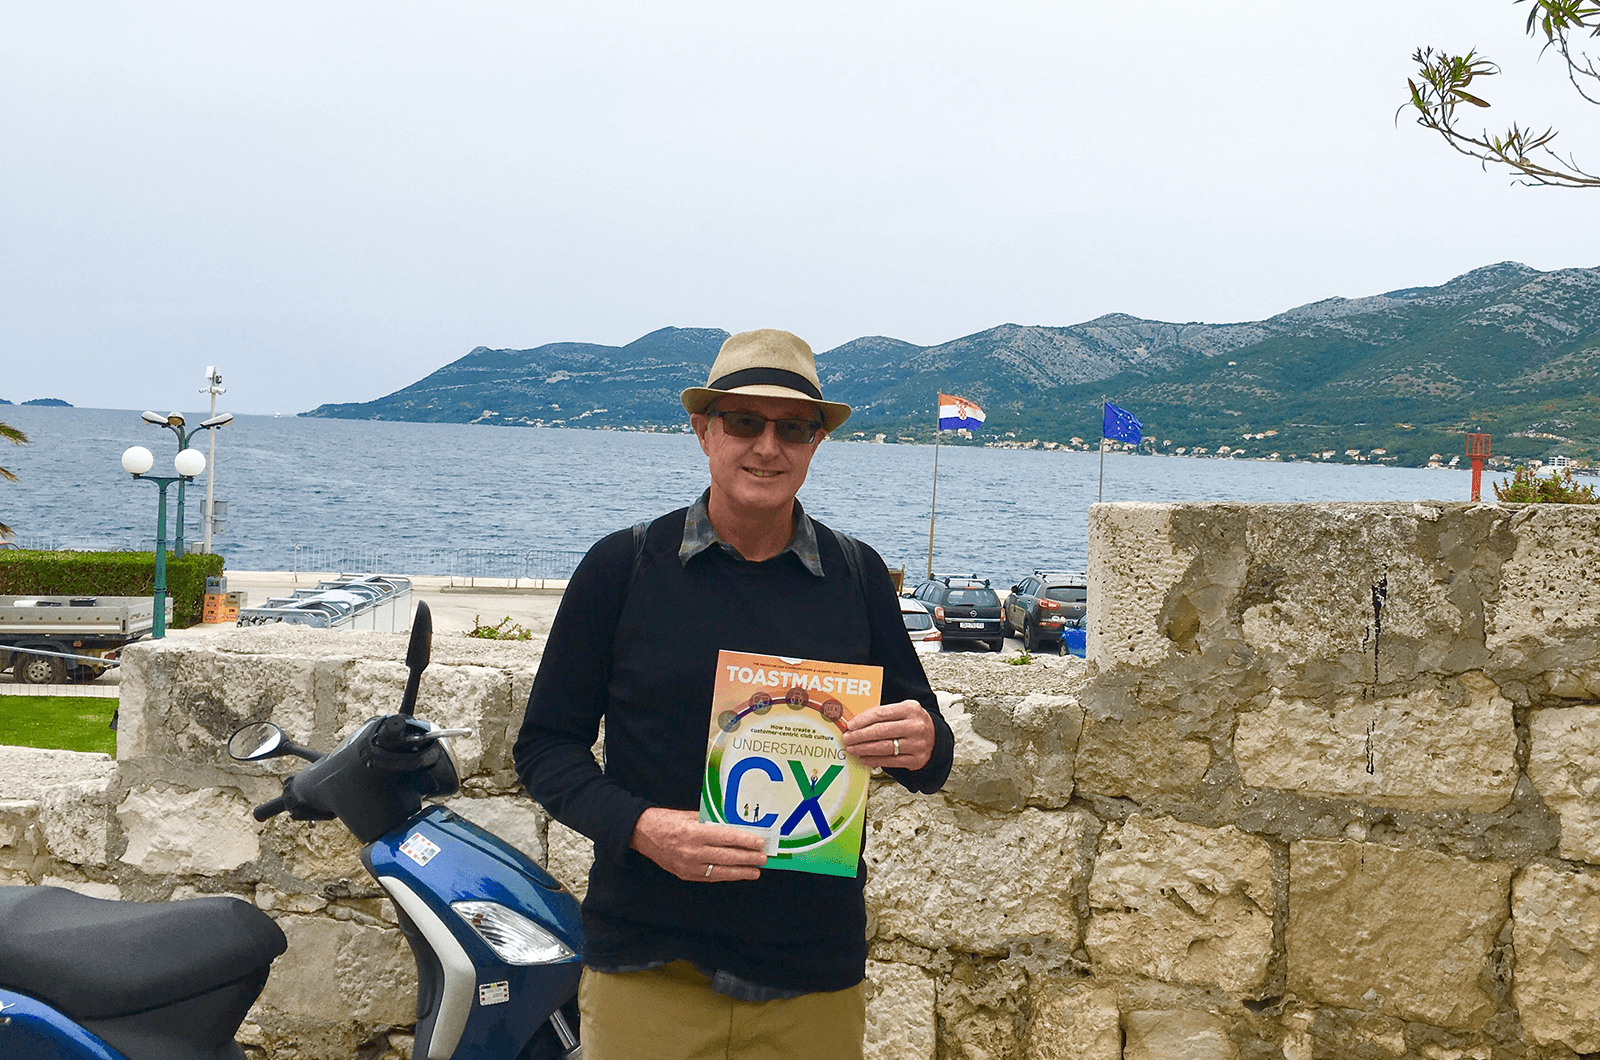 Dan O'Kane of Portland, Oregon, visits Korcula, a Croatian island in the Adriatic Sea, which claims to be the birthplace of famous explorer Marco Polo.